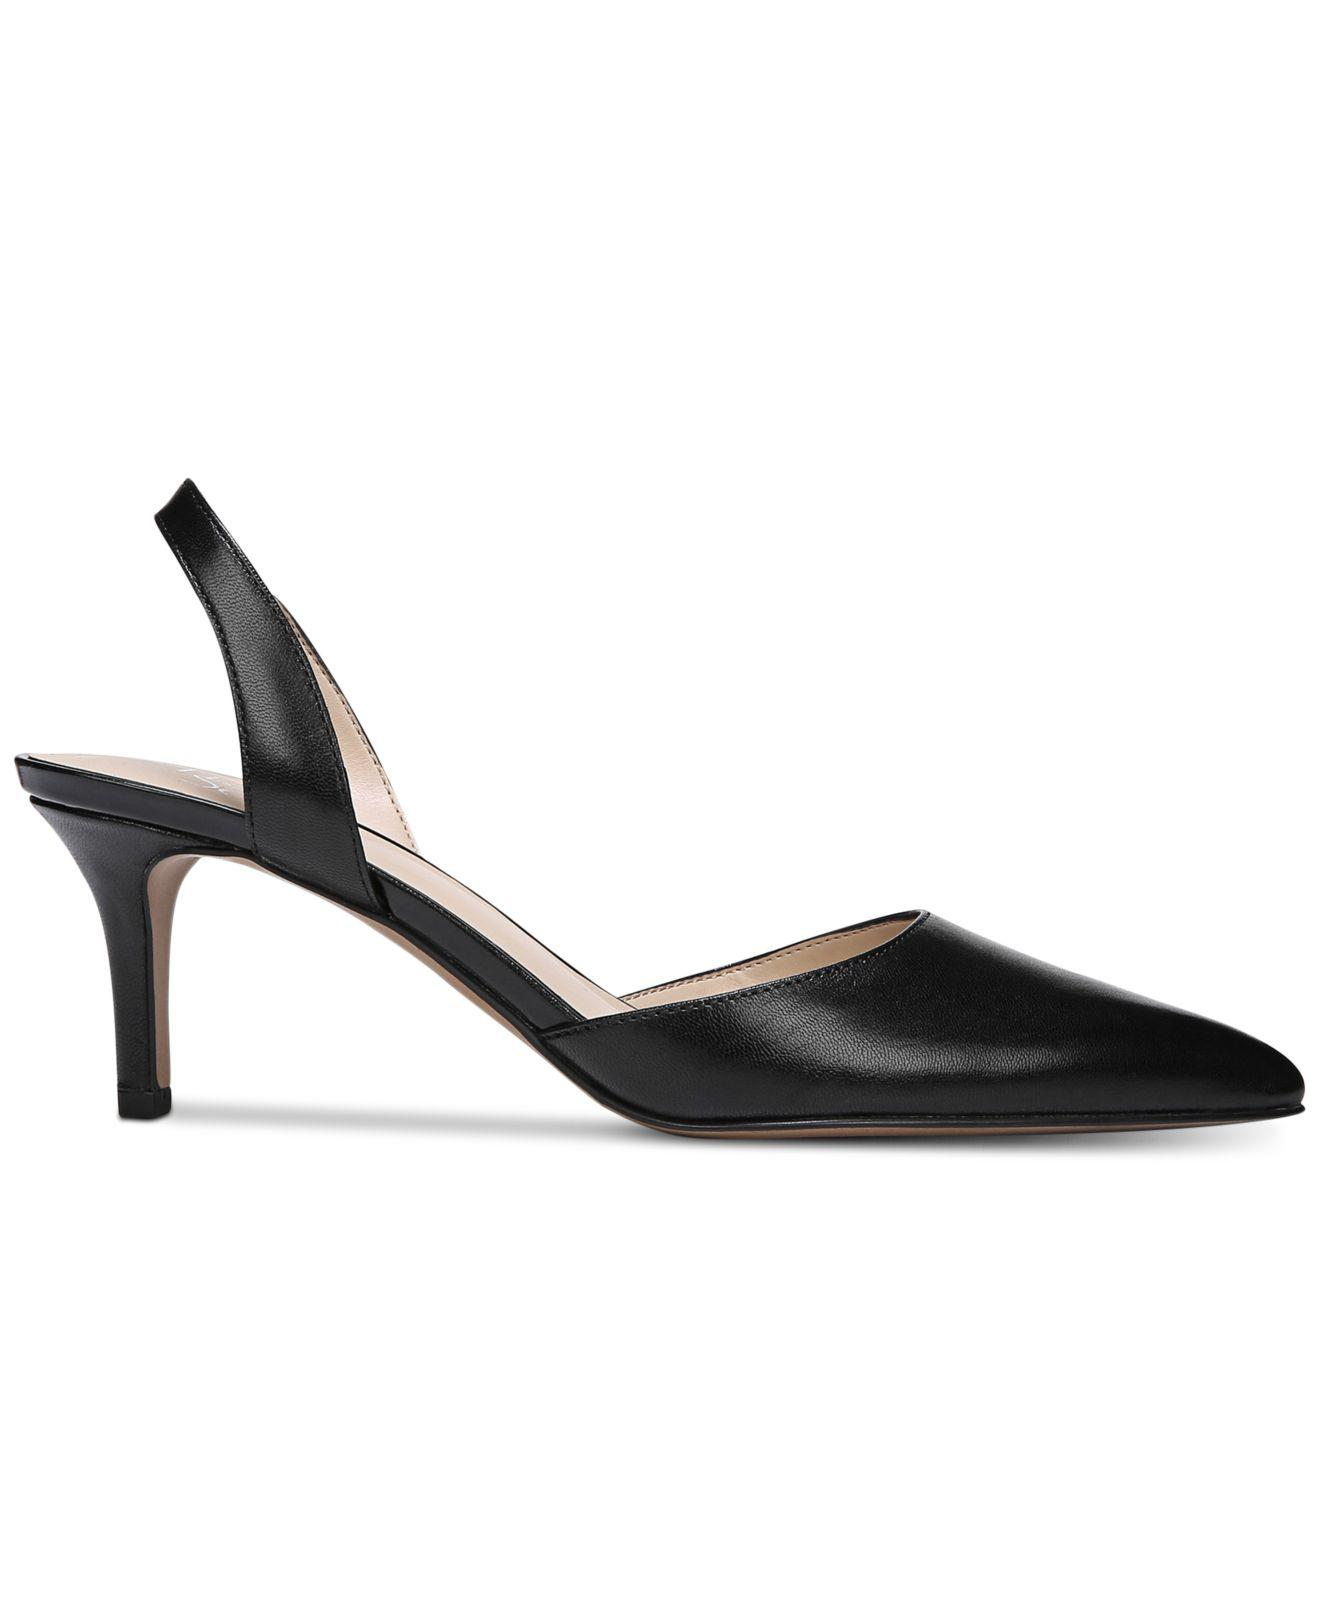 ce41513a22f Franco Sarto Tokyo Pointed-toe Slingback Pumps in Black - Save 52% - Lyst